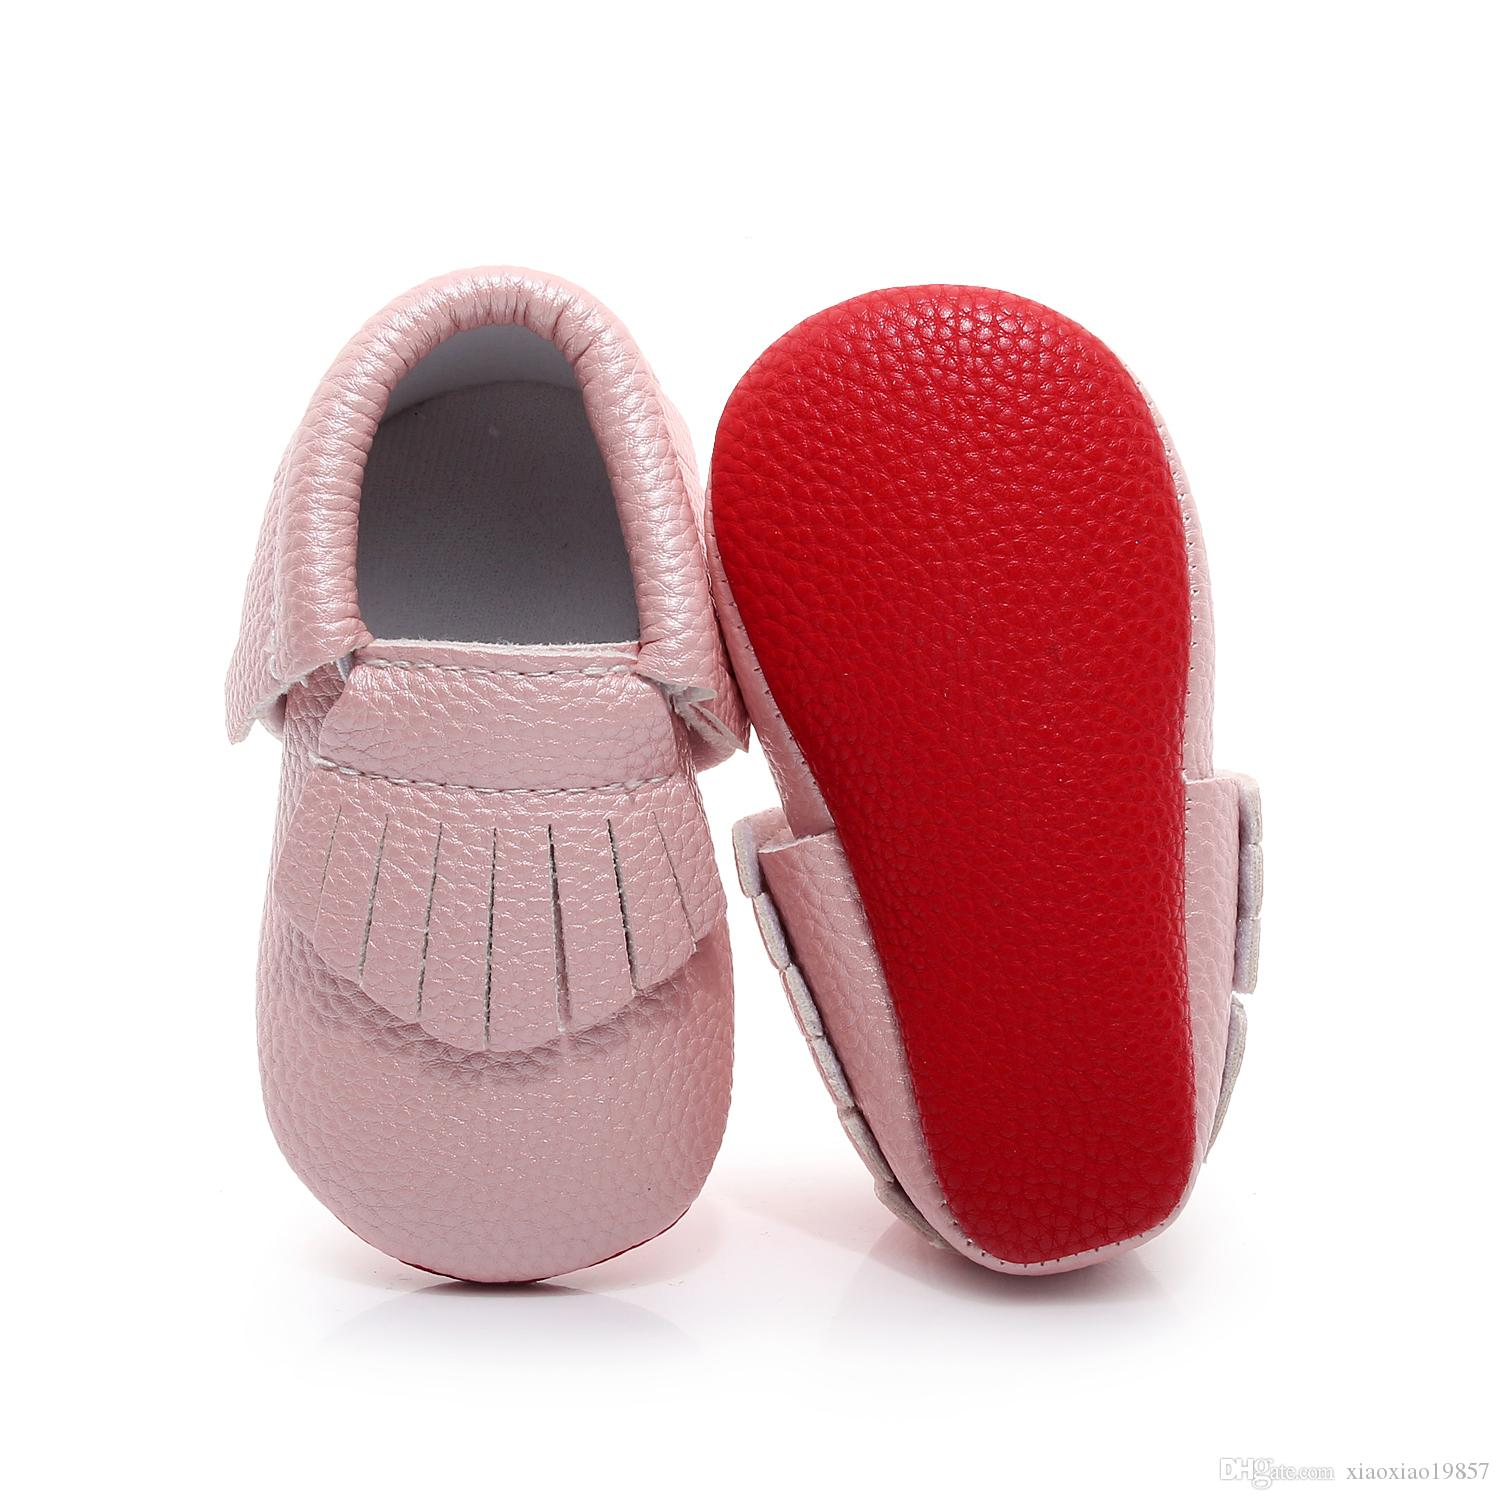 3312ffbc20f87 2019 2017 New Hot Sell Red Bottom Fringe Baby Moccasins Shoes First Walkers  PU Leather Newborn Infant Shoes For Boys Girls 0 2Y From Xiaoxiao19857